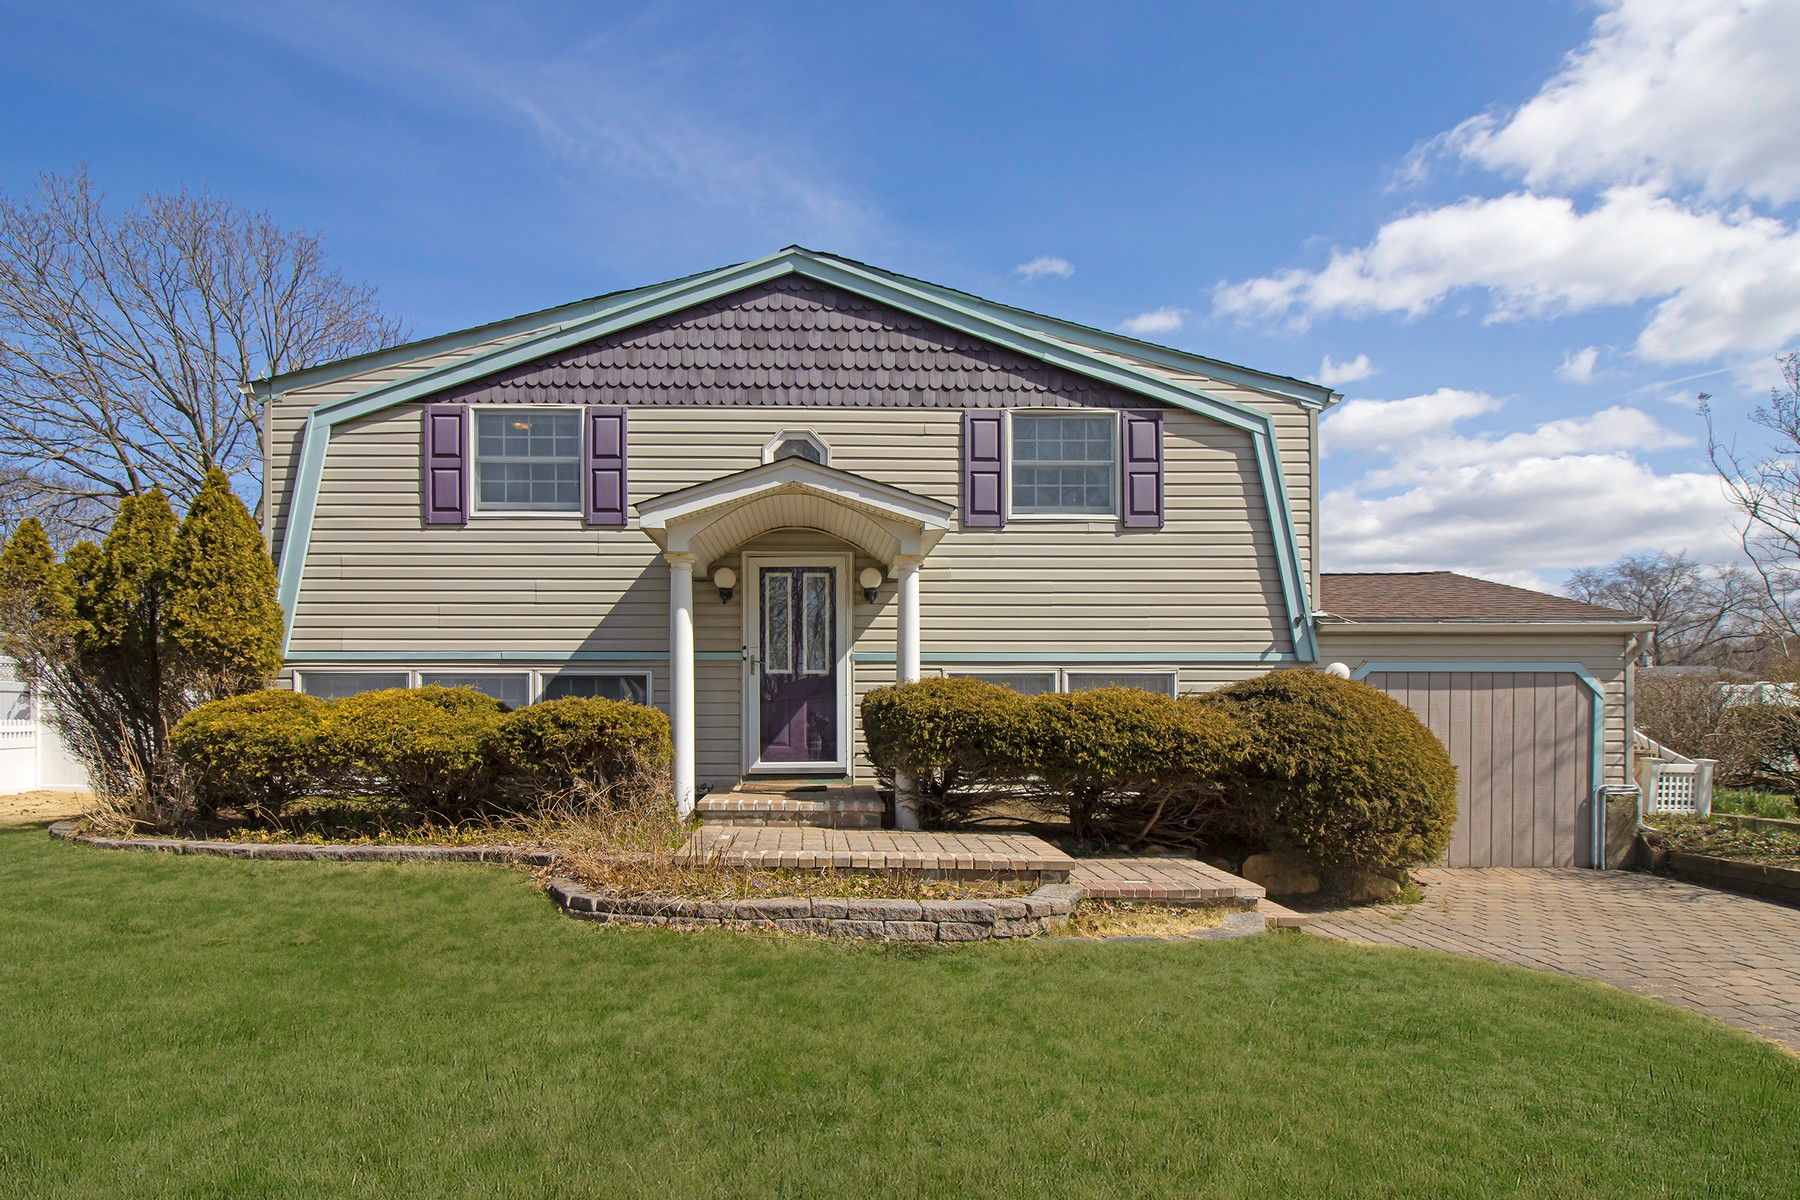 Single Family Homes for Sale at Heatherwood 55 University Heigh Drive Stony Brook, New York 11790 United States